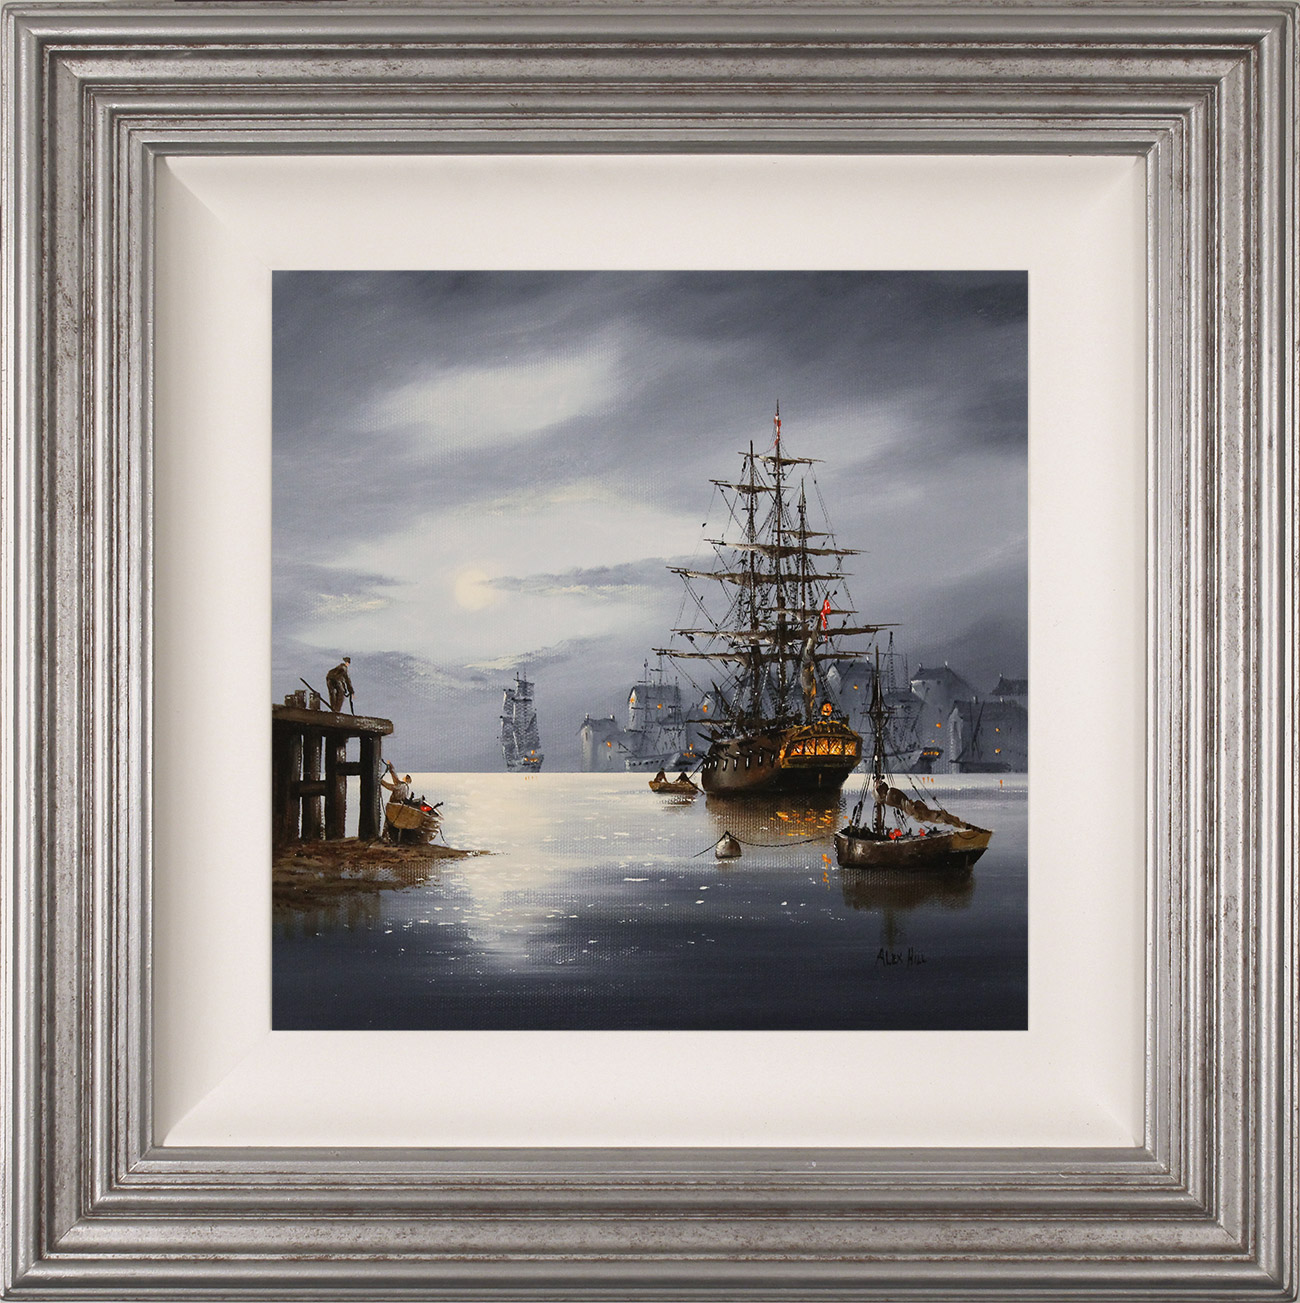 Alex Hill, Original oil painting on canvas, Moonlight Galleon , click to enlarge